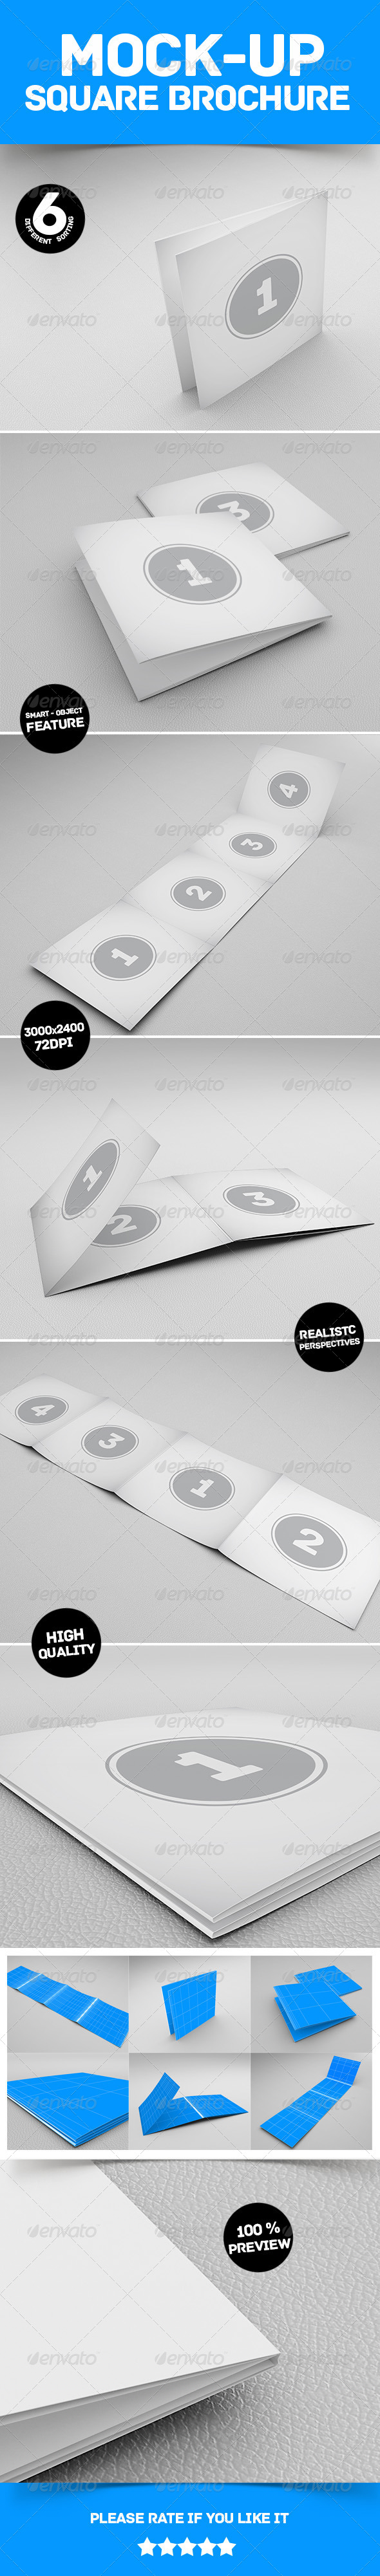 Mockup Square Brochure - Product Mock-Ups Graphics